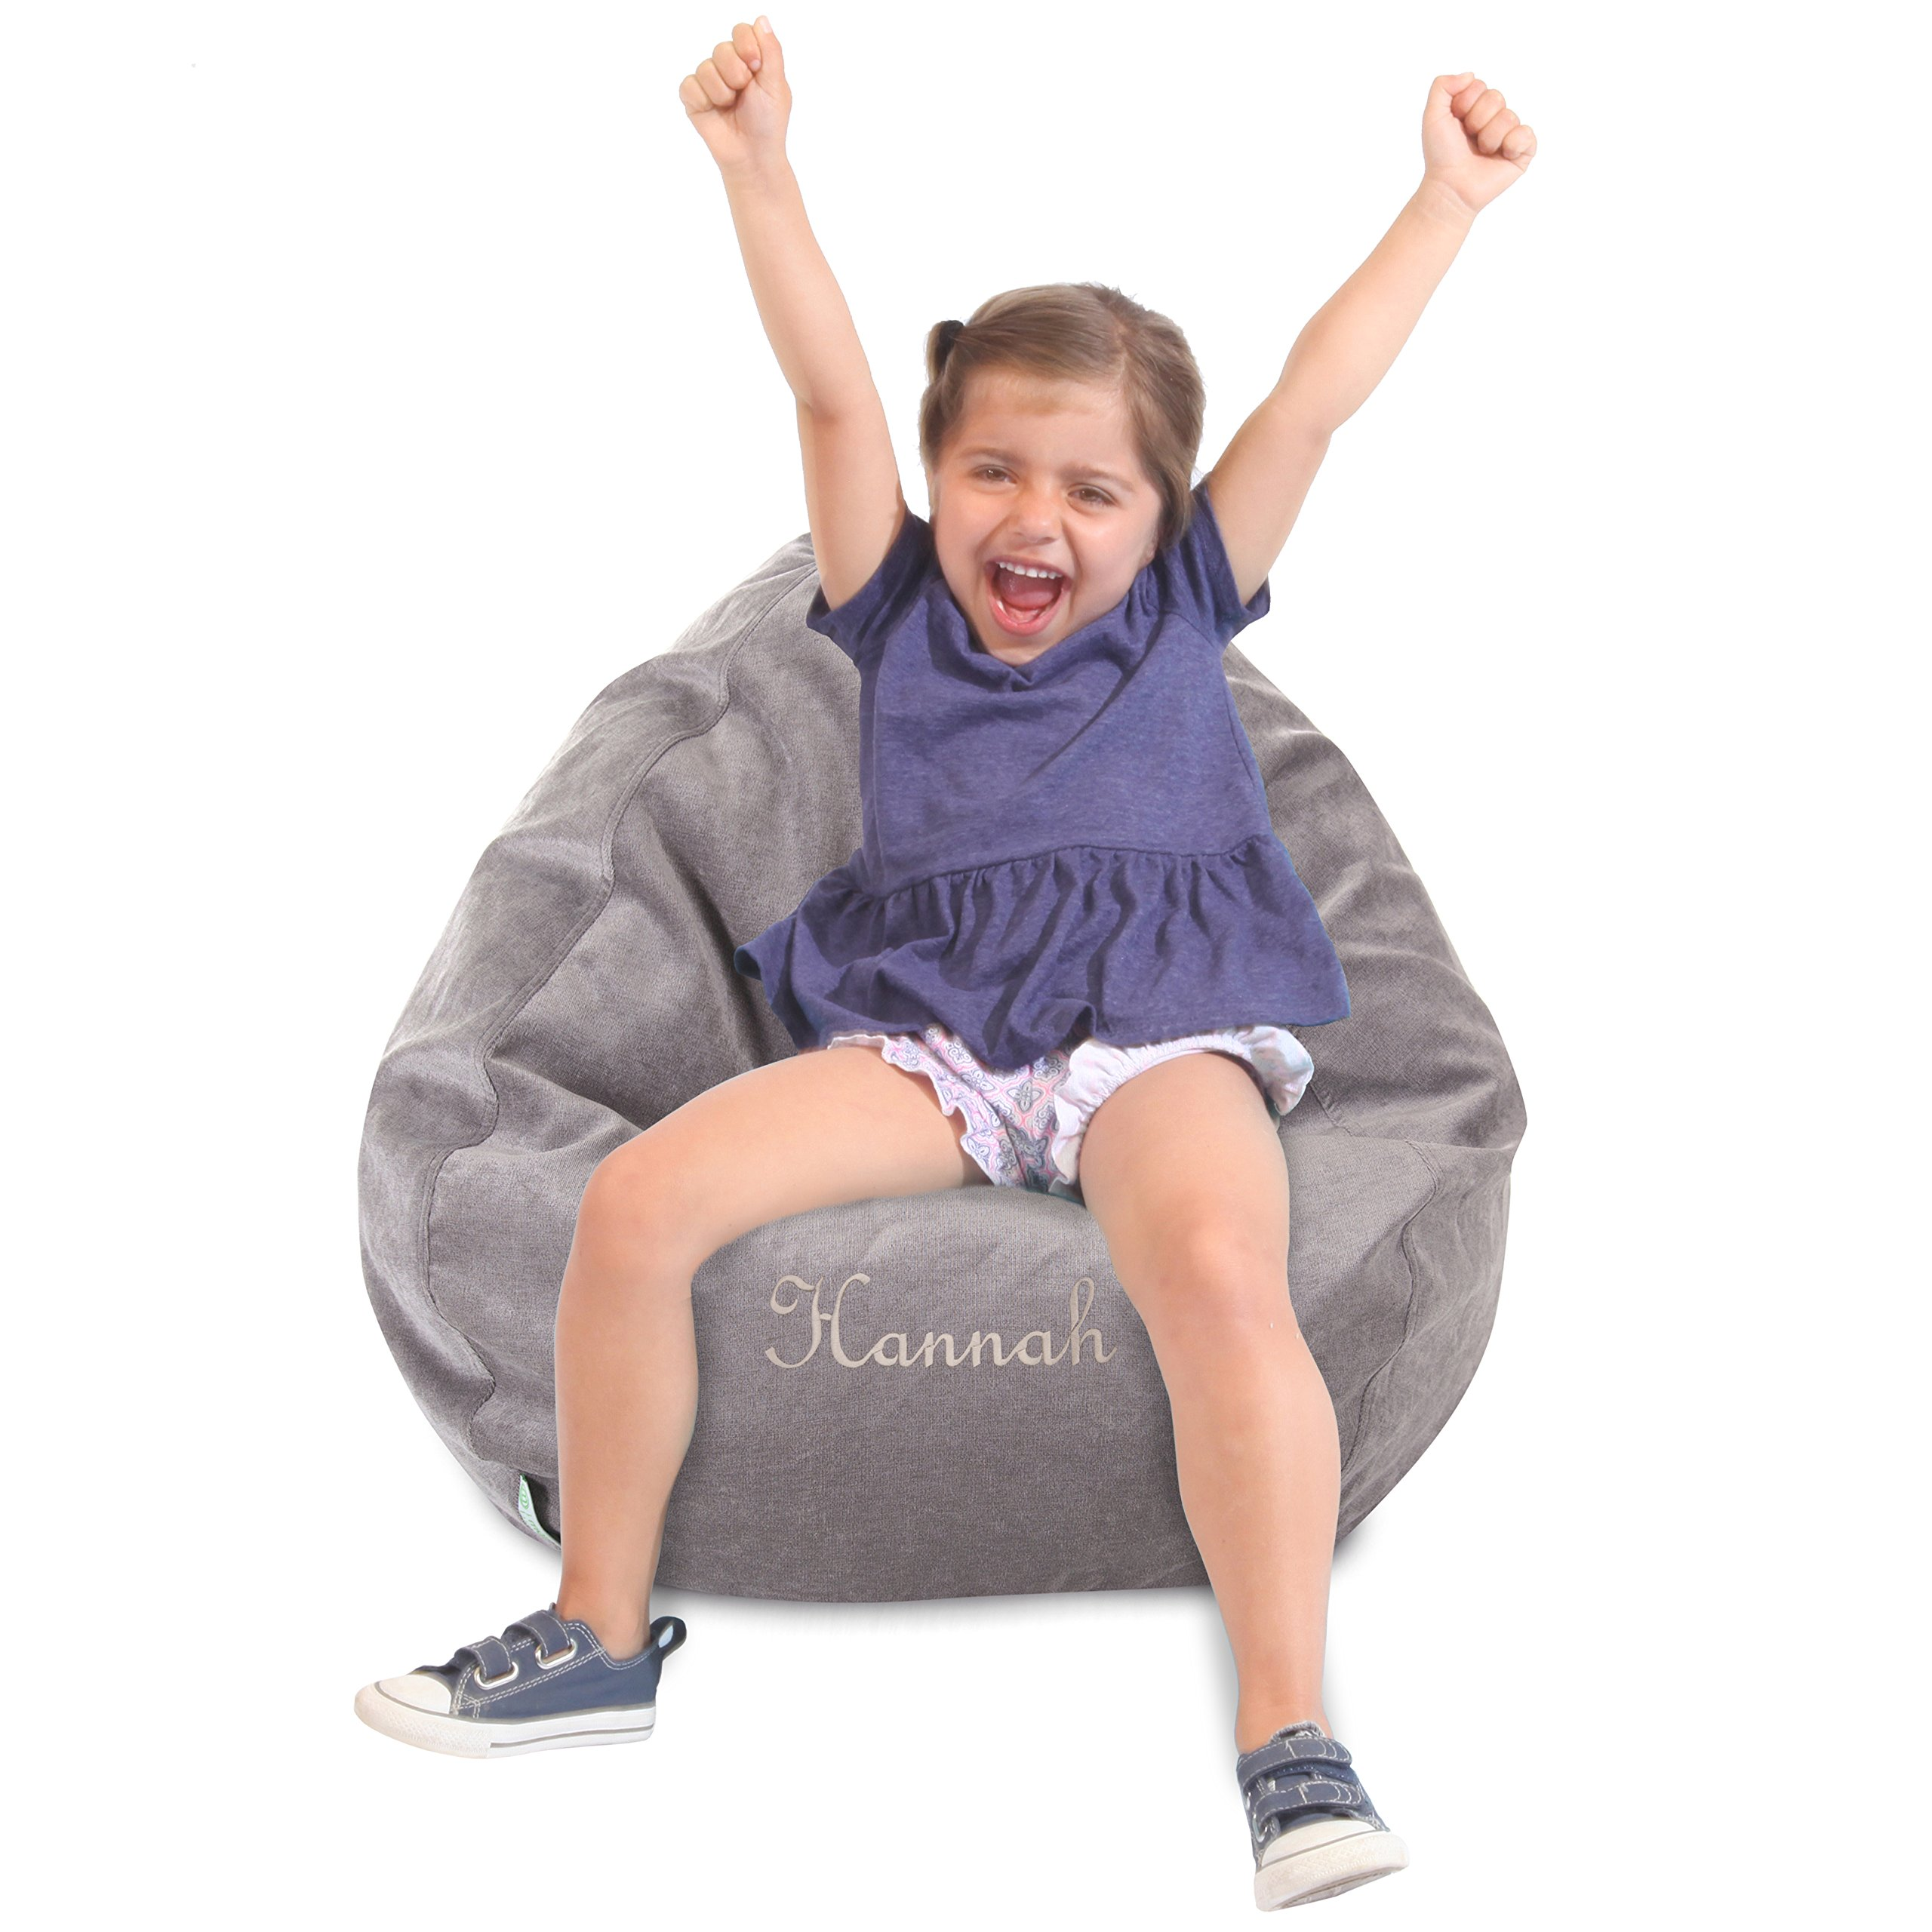 Personalized Majestic Home Goods Classic Bean Bag Chair - Villa Giant Classic Bean Bags for Small Adults and Kids, 28 x 28 x 22 Inches (Vintage)